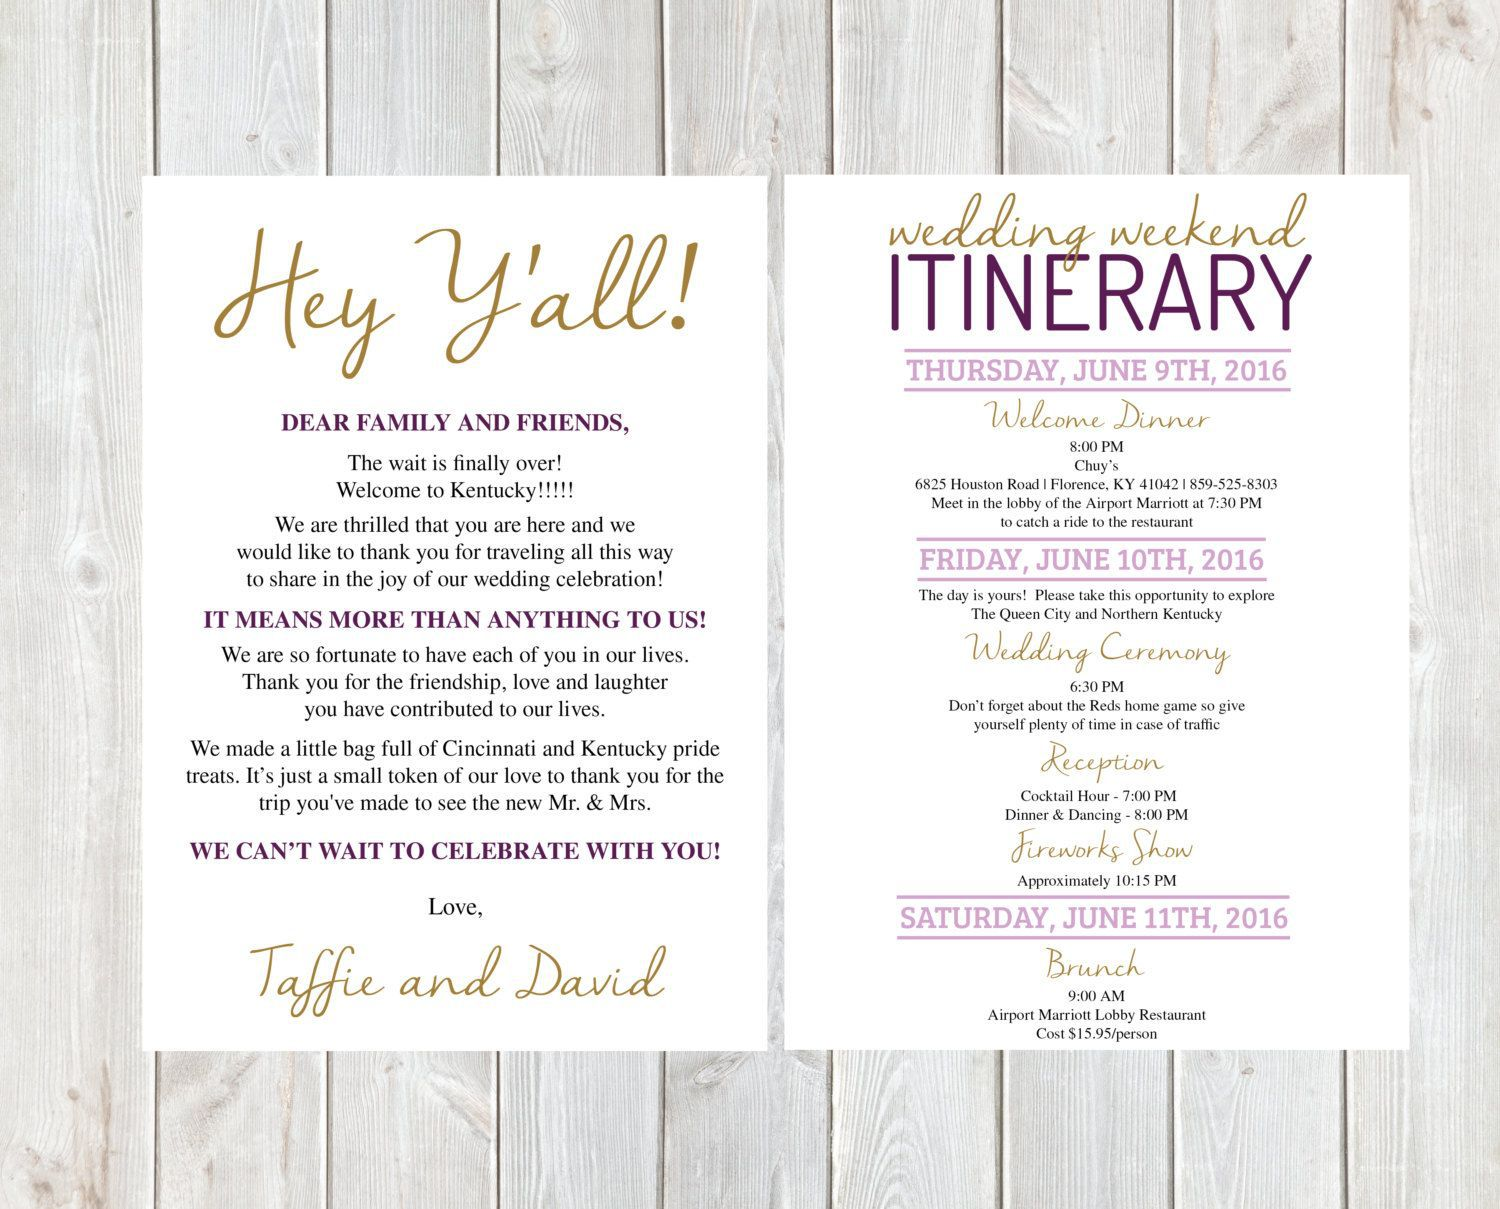 002 Awesome Wedding Welcome Letter Template Free High Def  BagFull